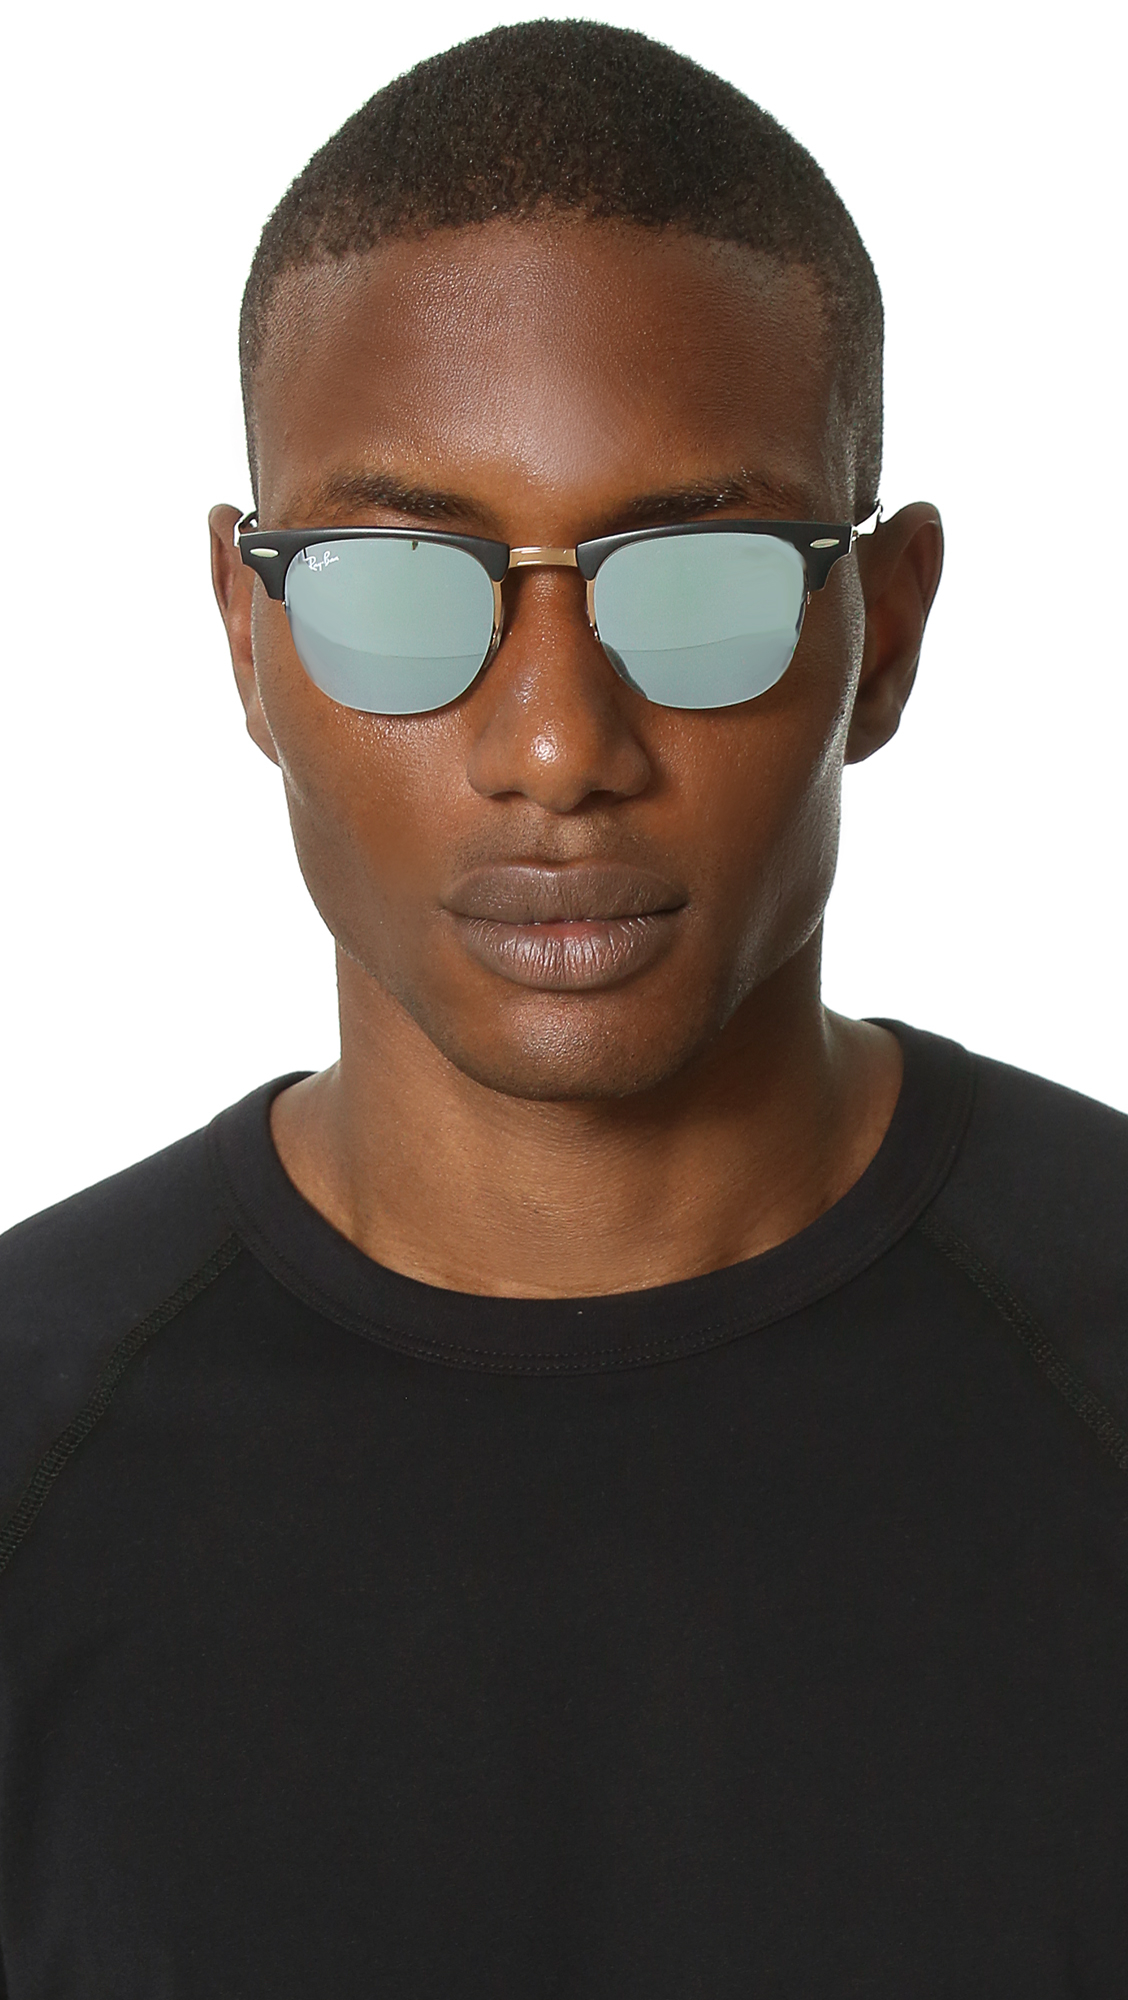 edf59a7071 Ray-Ban Lightweight Clubmaster Sunglasses With Flash Lens in Brown for Men  - Lyst